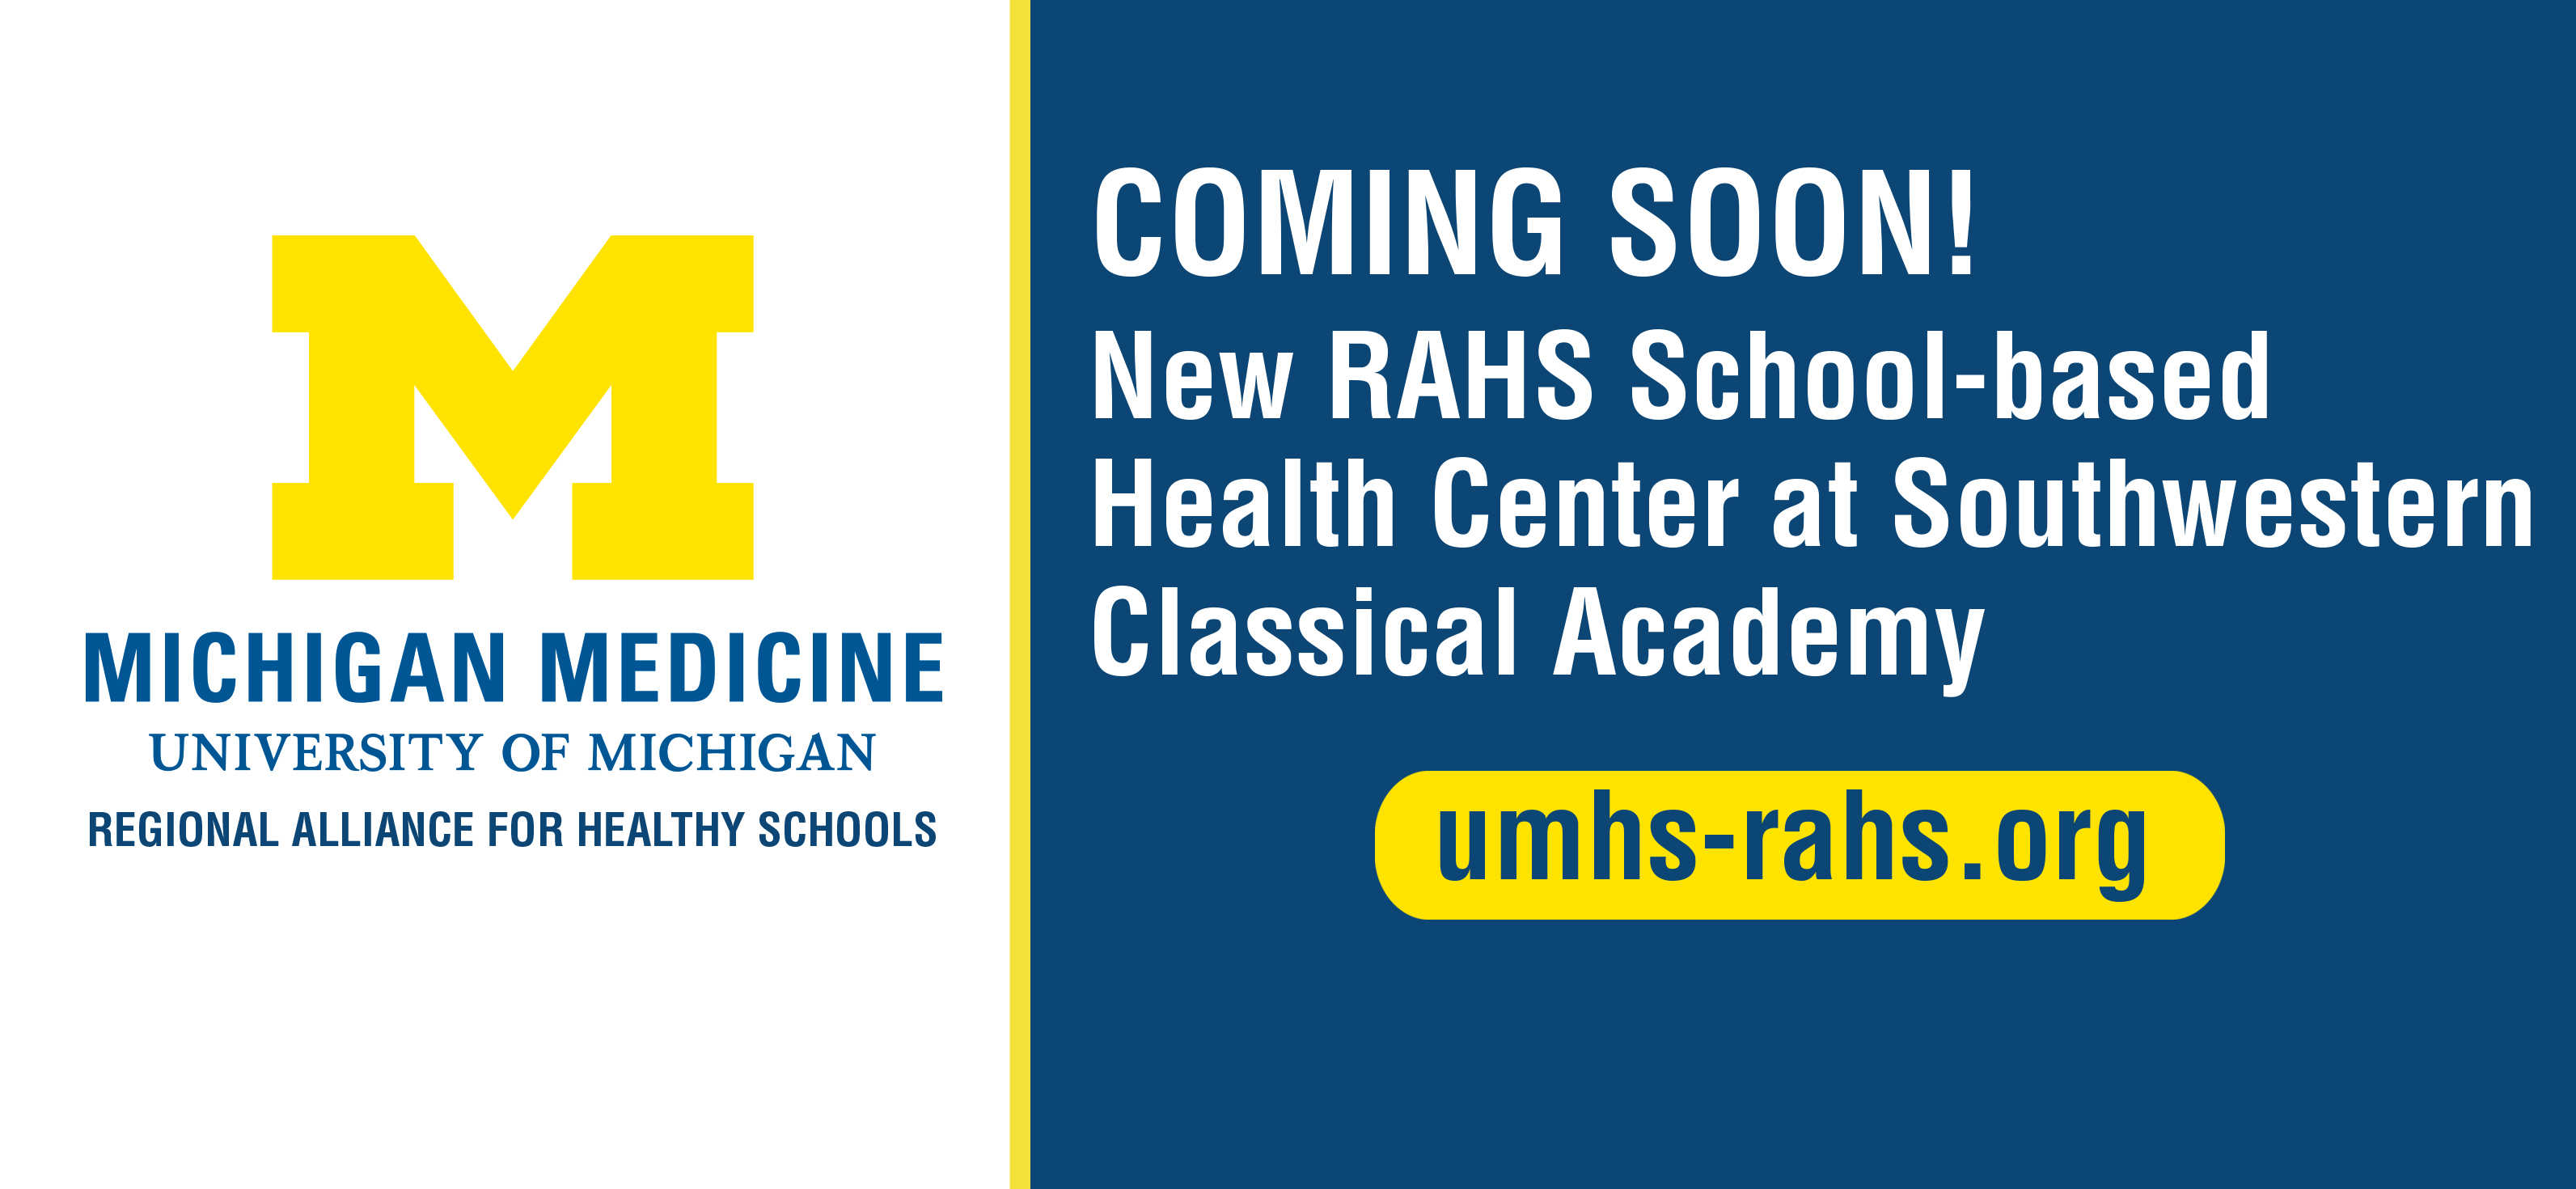 Coming Soon to Southwestern Classical Academy